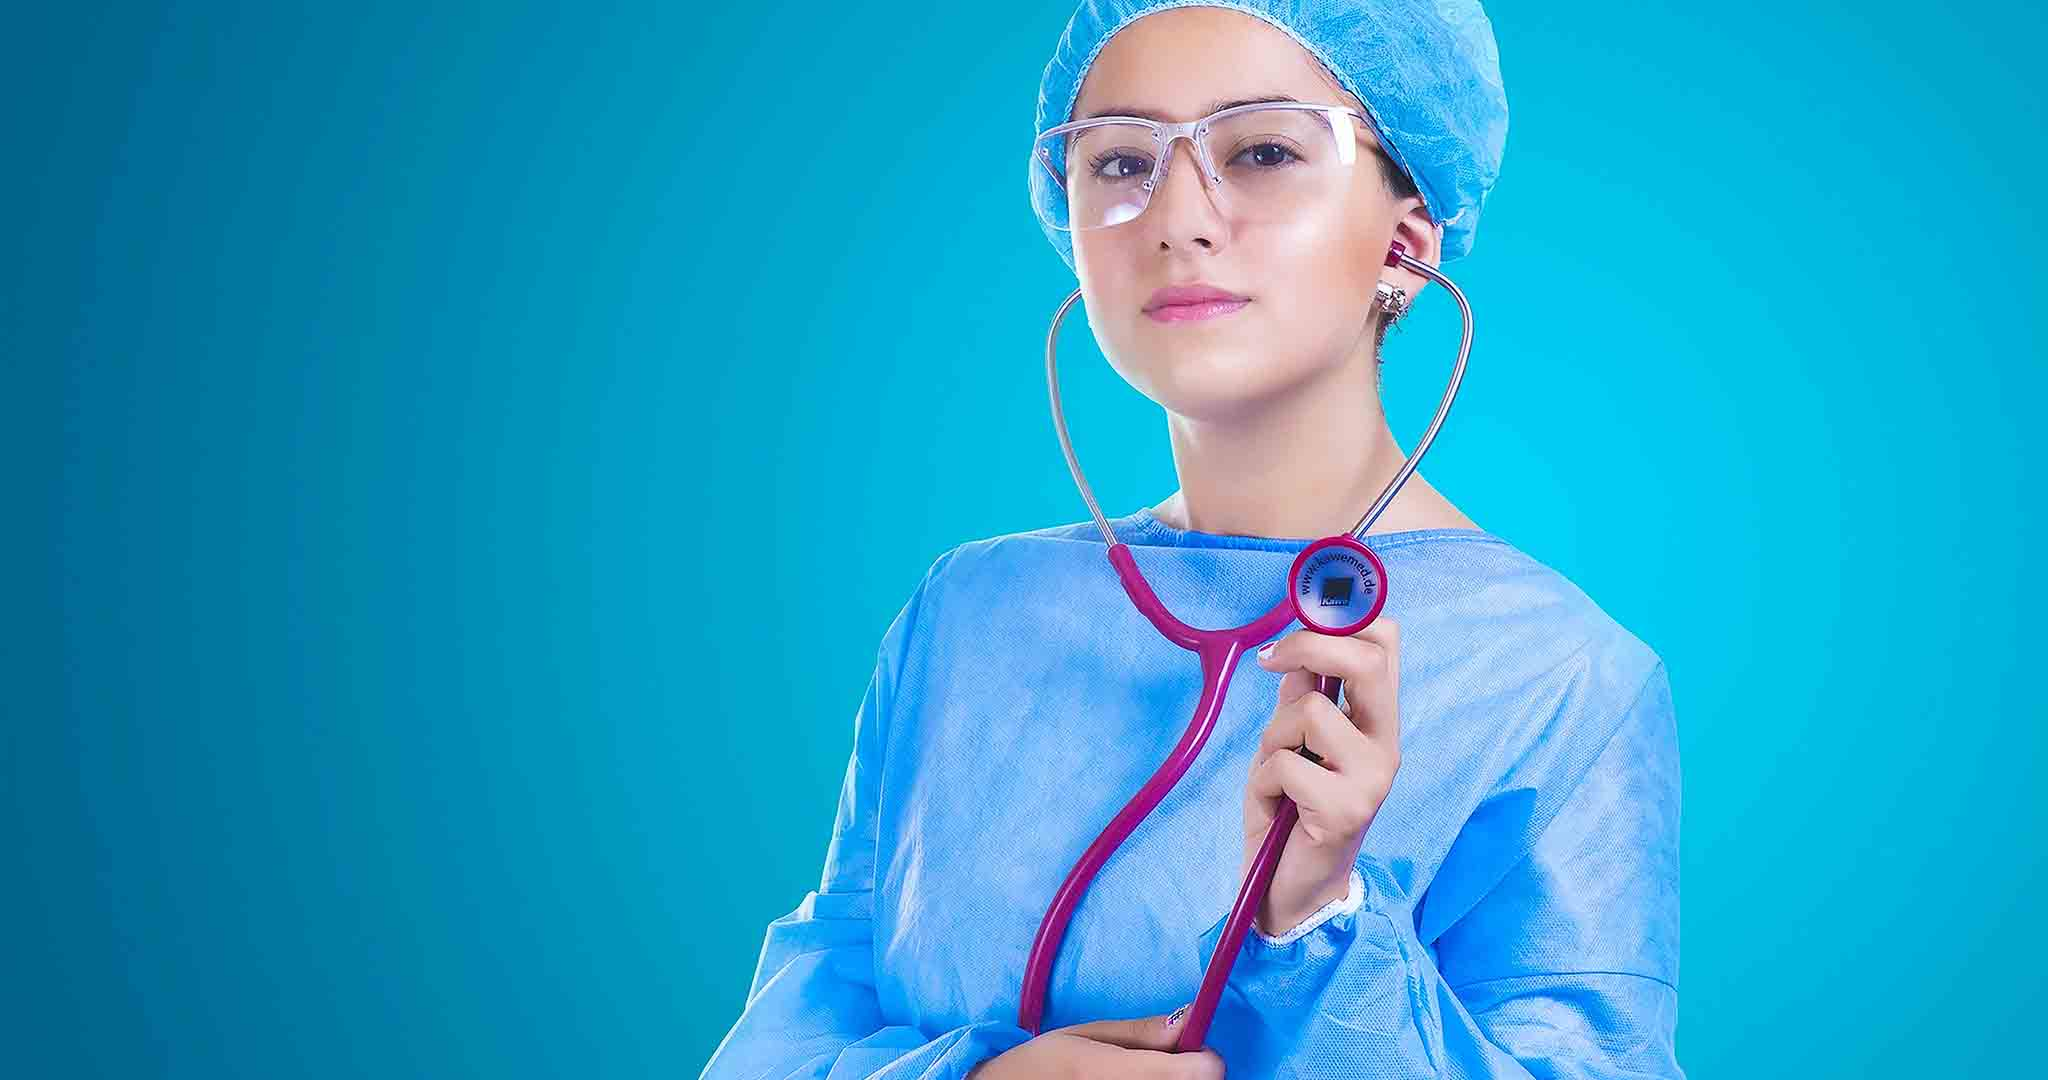 adult doctor girl doctor stock photos